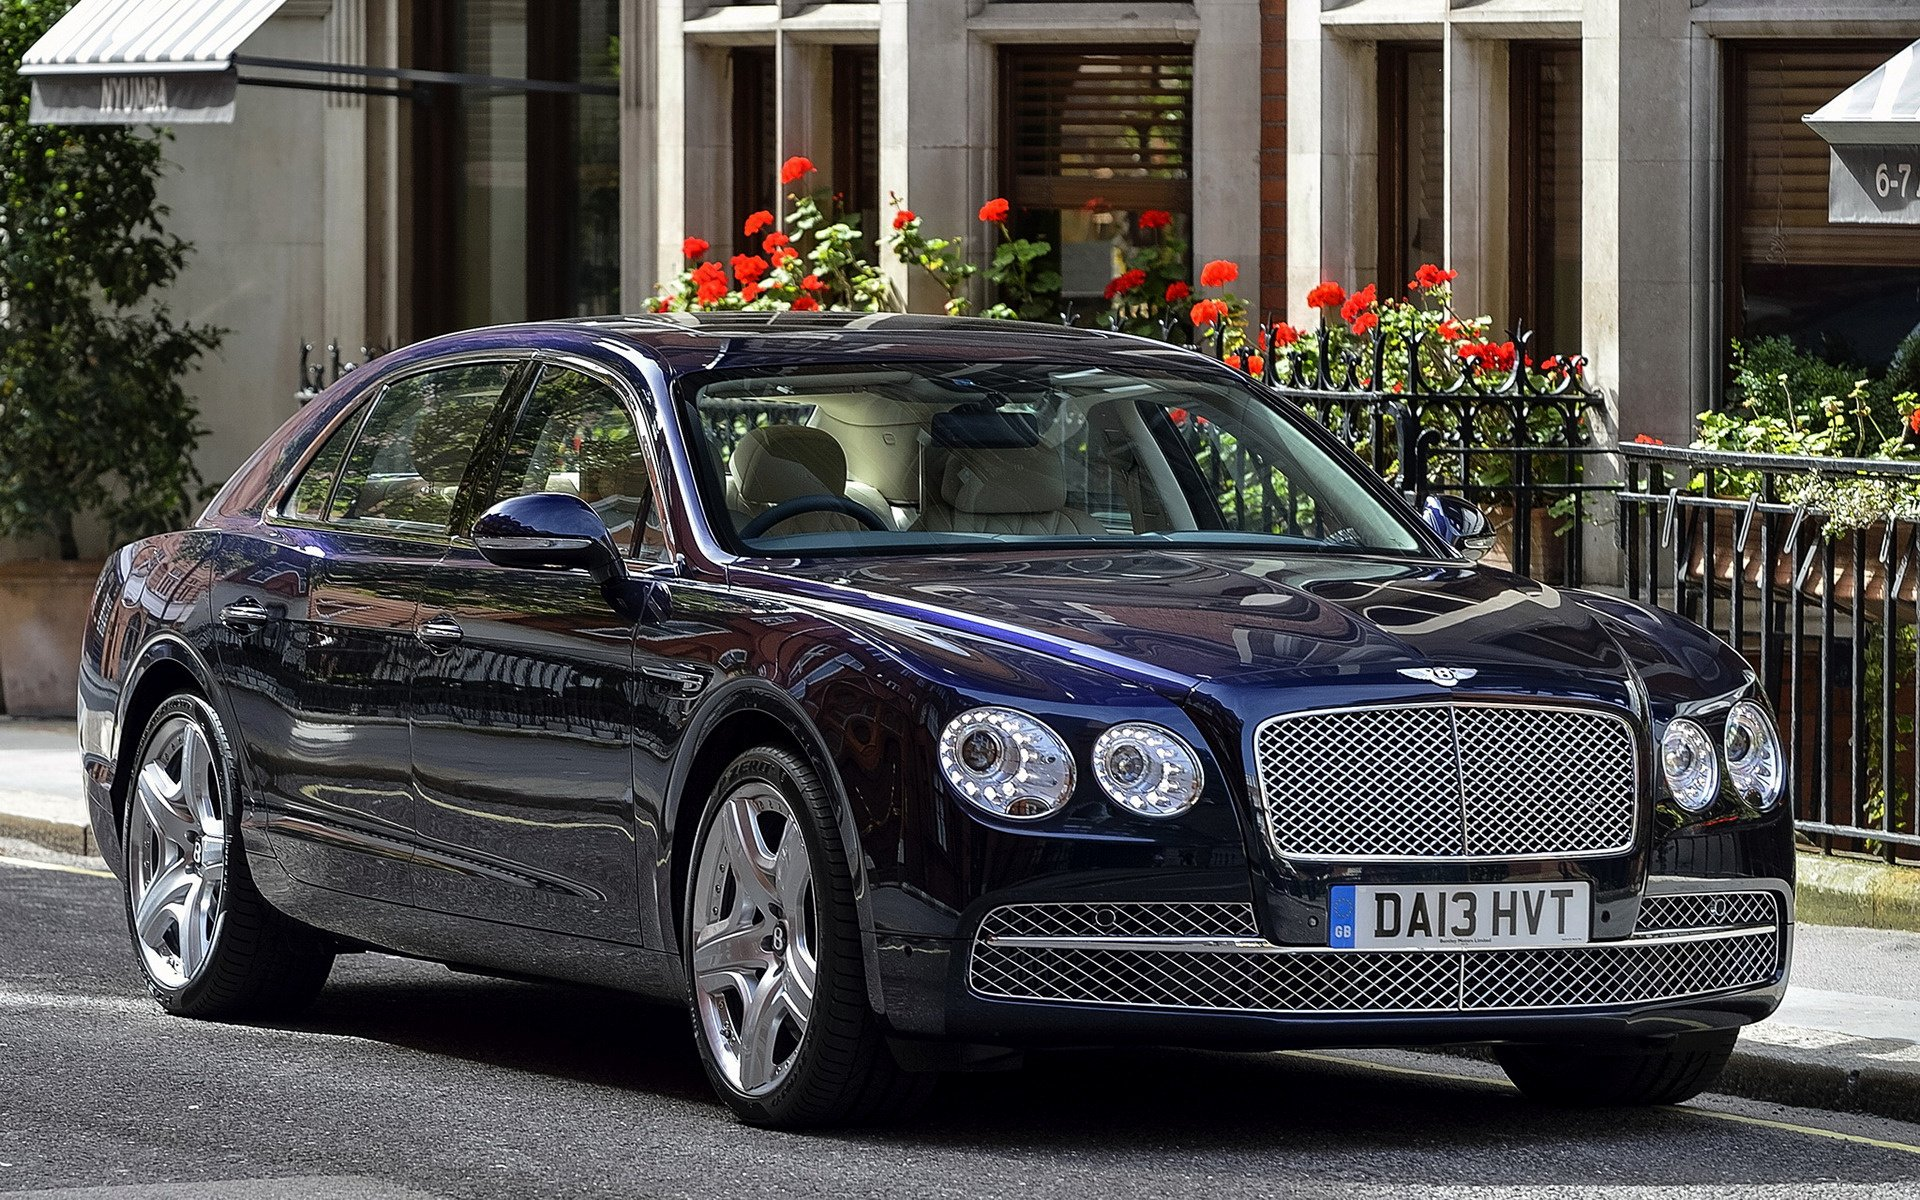 2013 Bentley Flying Spur UK   Wallpapers and HD Images Car Pixel 1920x1200